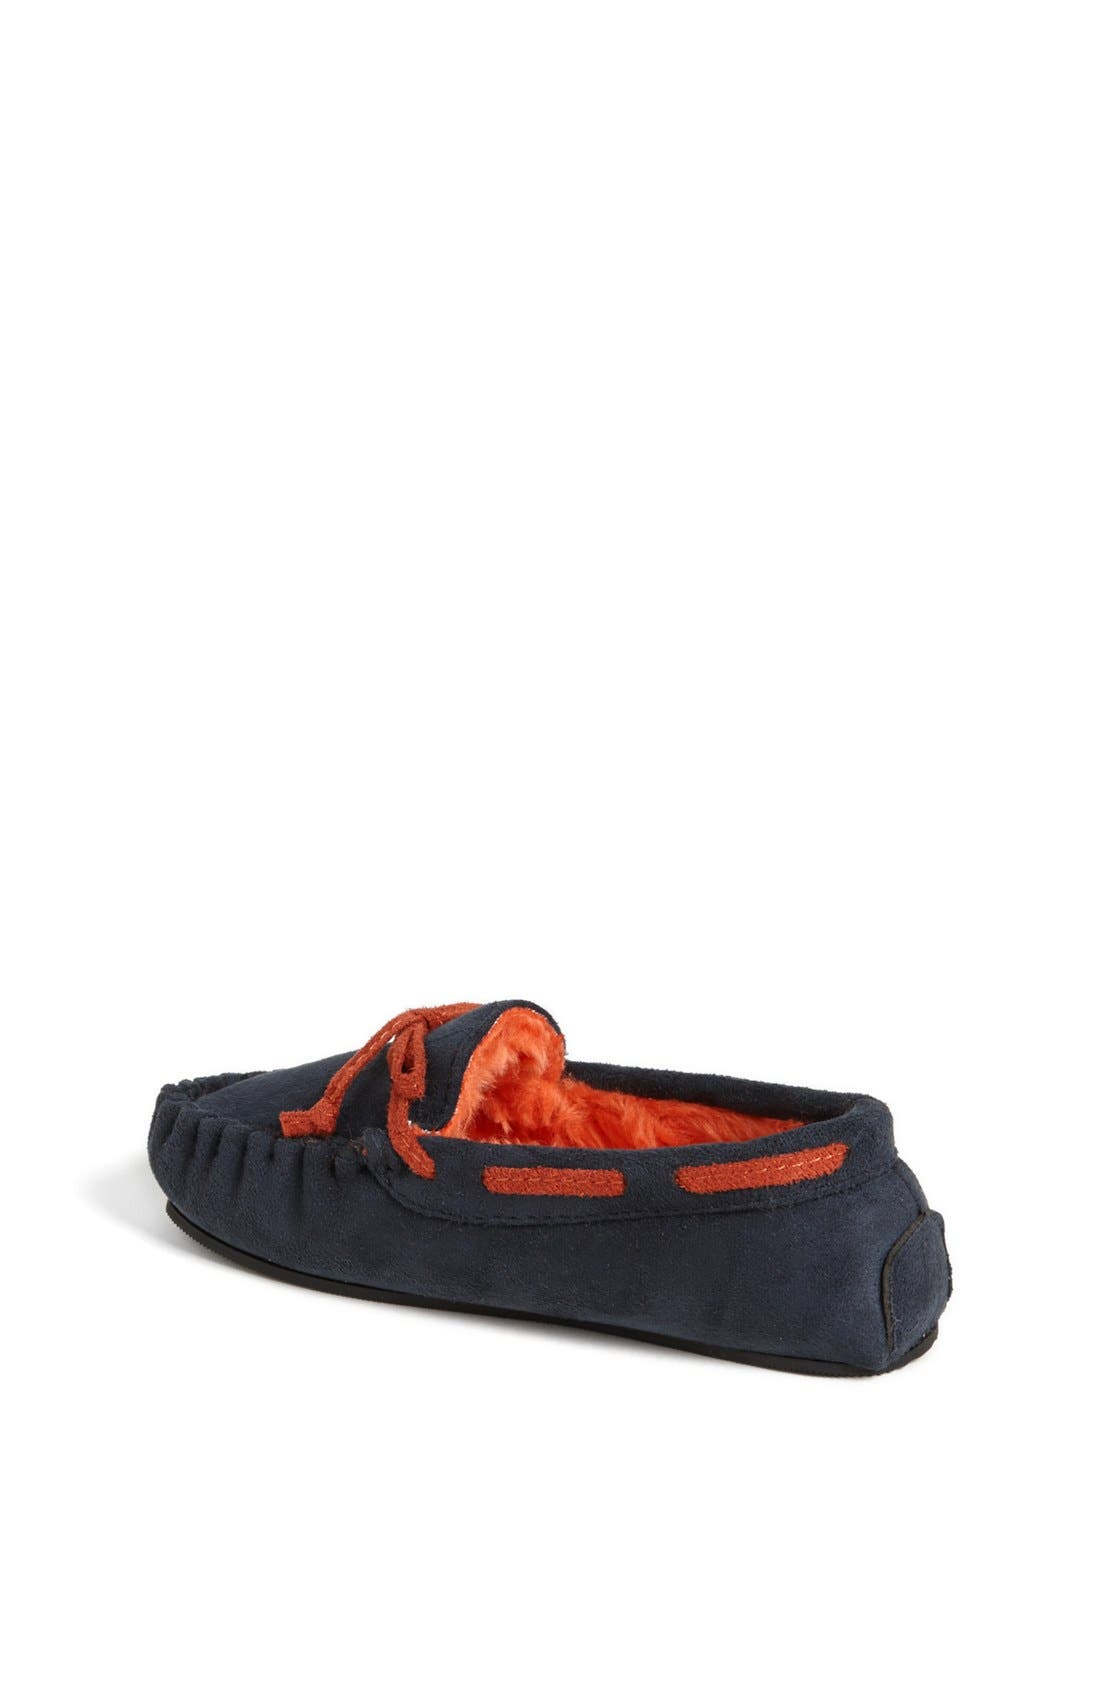 Alternate Image 2  - Stride Rite Moc Stitched Slippers (Toddler & Little Kid)